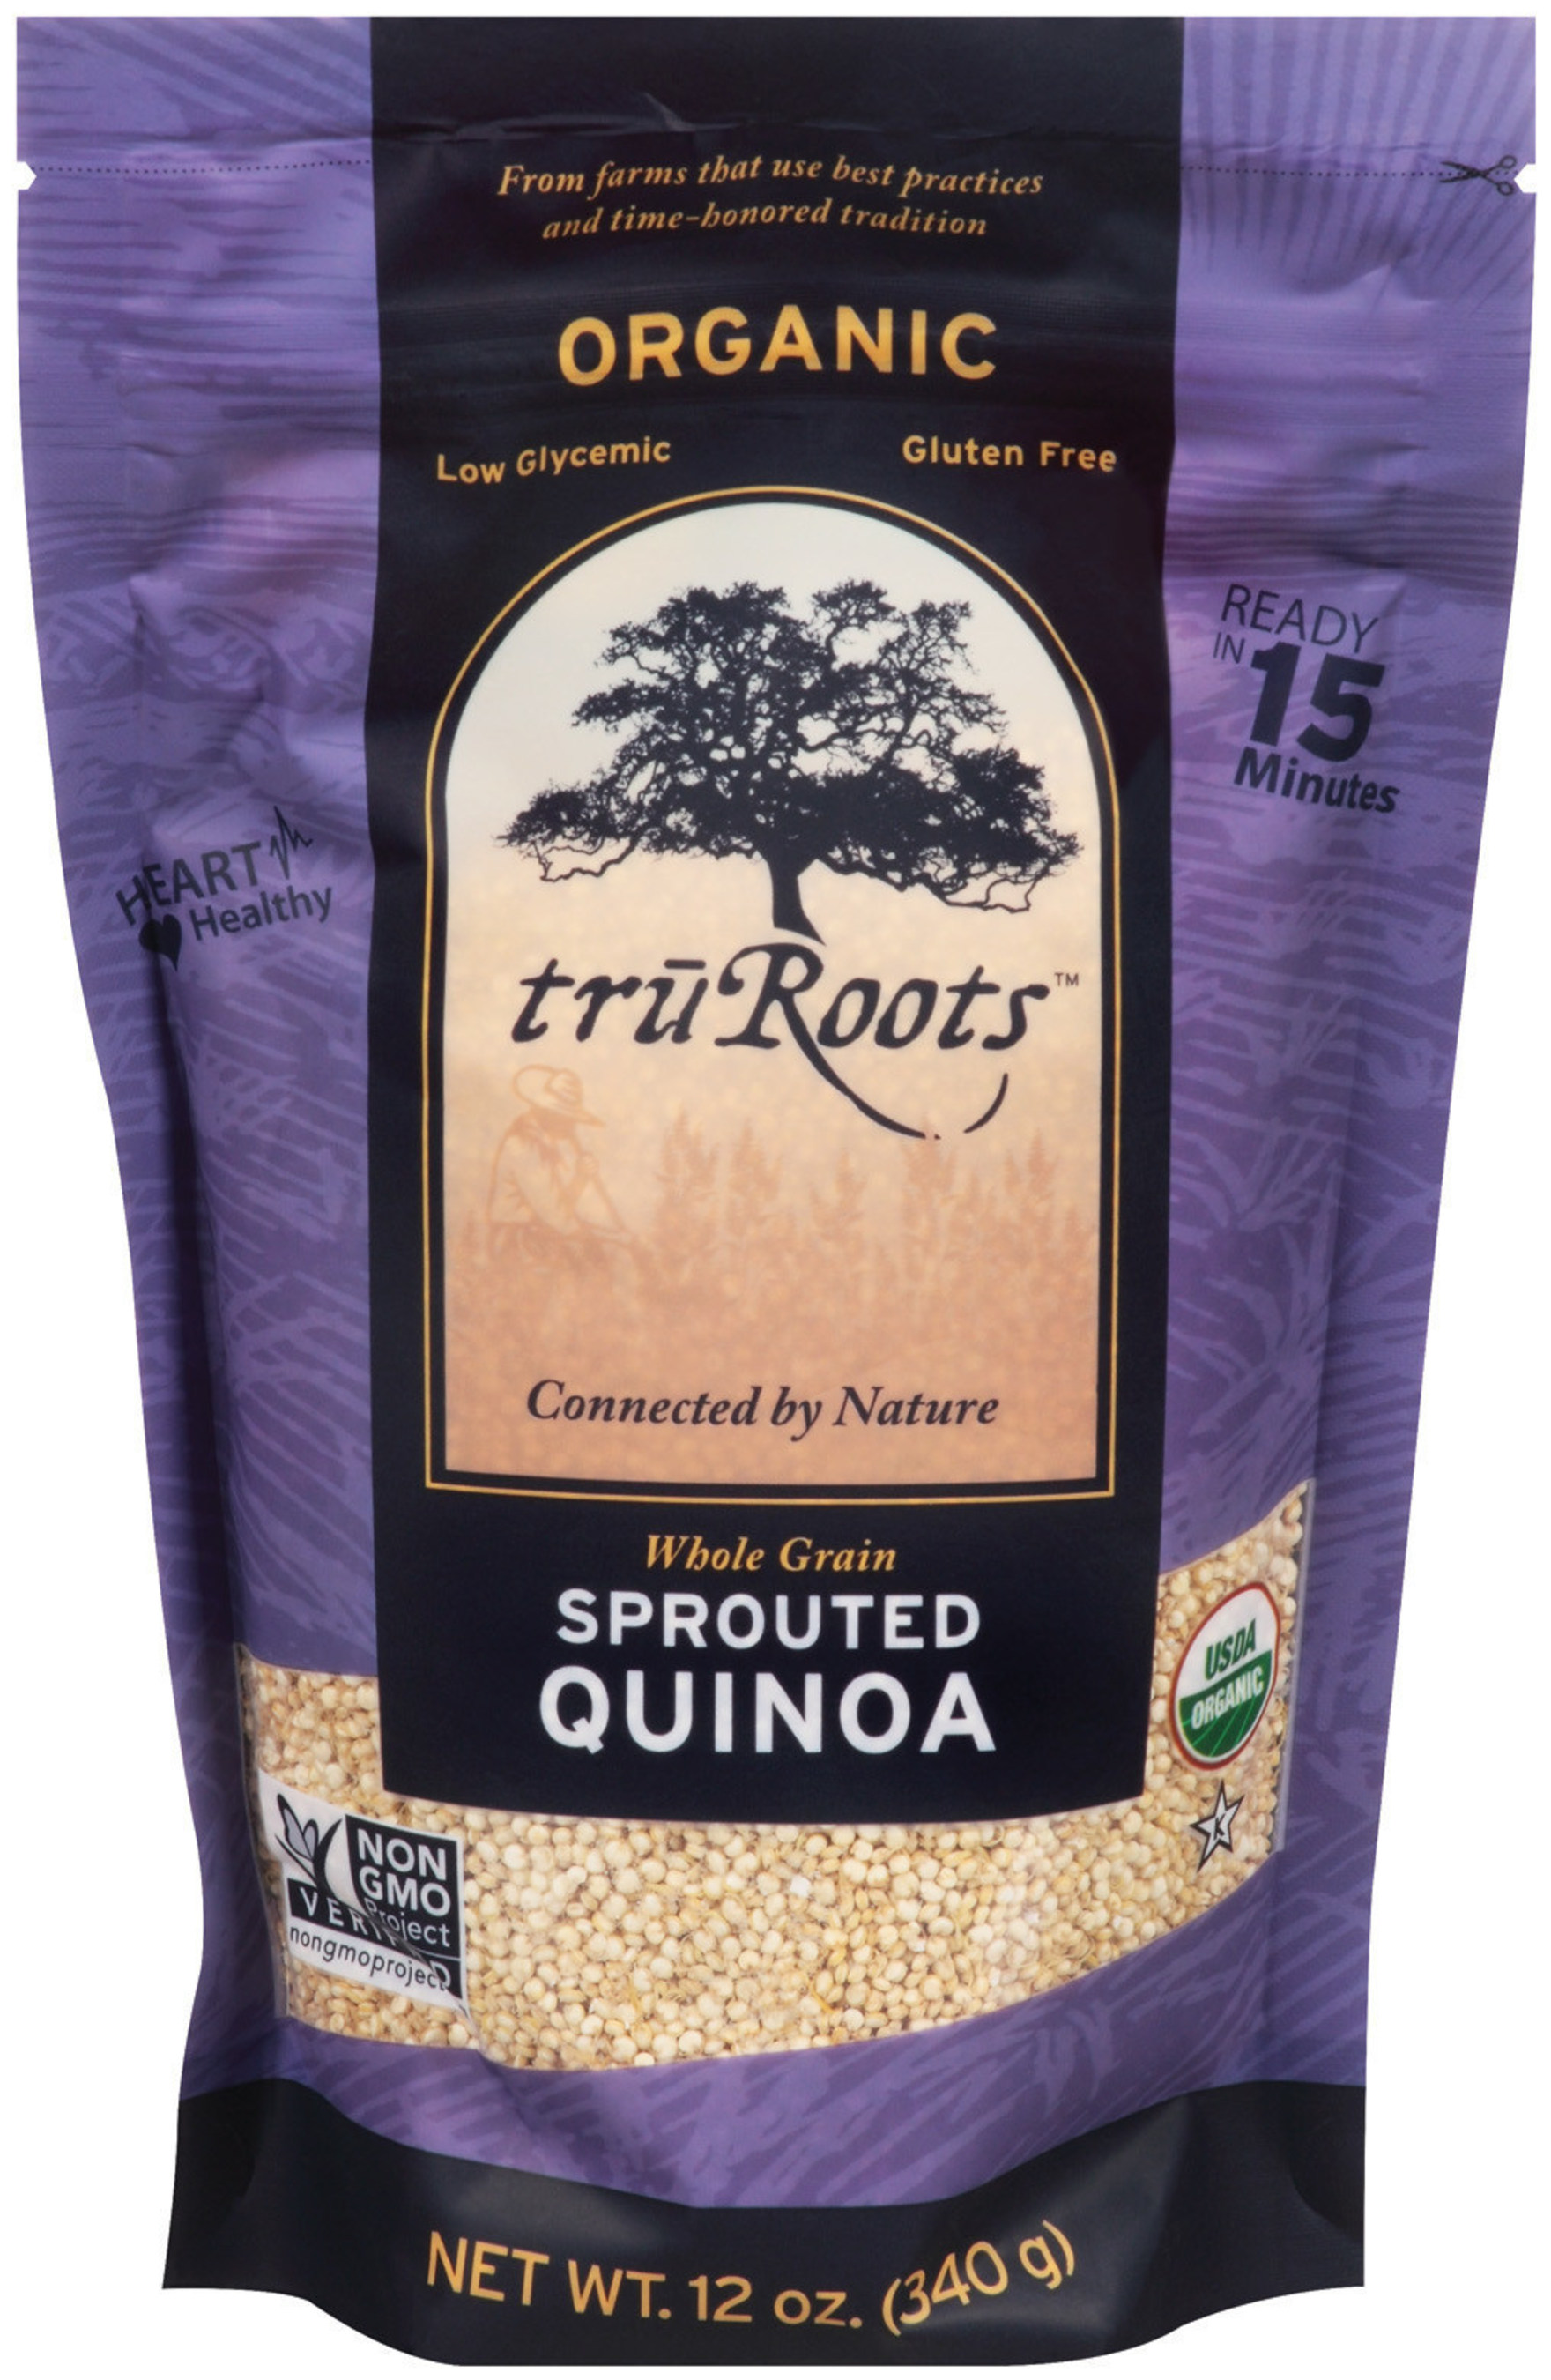 truRoots(R) Ancient Grains feature the highest quality organic ingredients that are harvested by traditional farmers using certified organic standards and time-honored practices. One of these ancient practices includes sprouting, an age-old tradition dating back to over 5,000 years ago. Sprouting helps to break down the protective coating of the grain, which helps unlock its natural goodness.